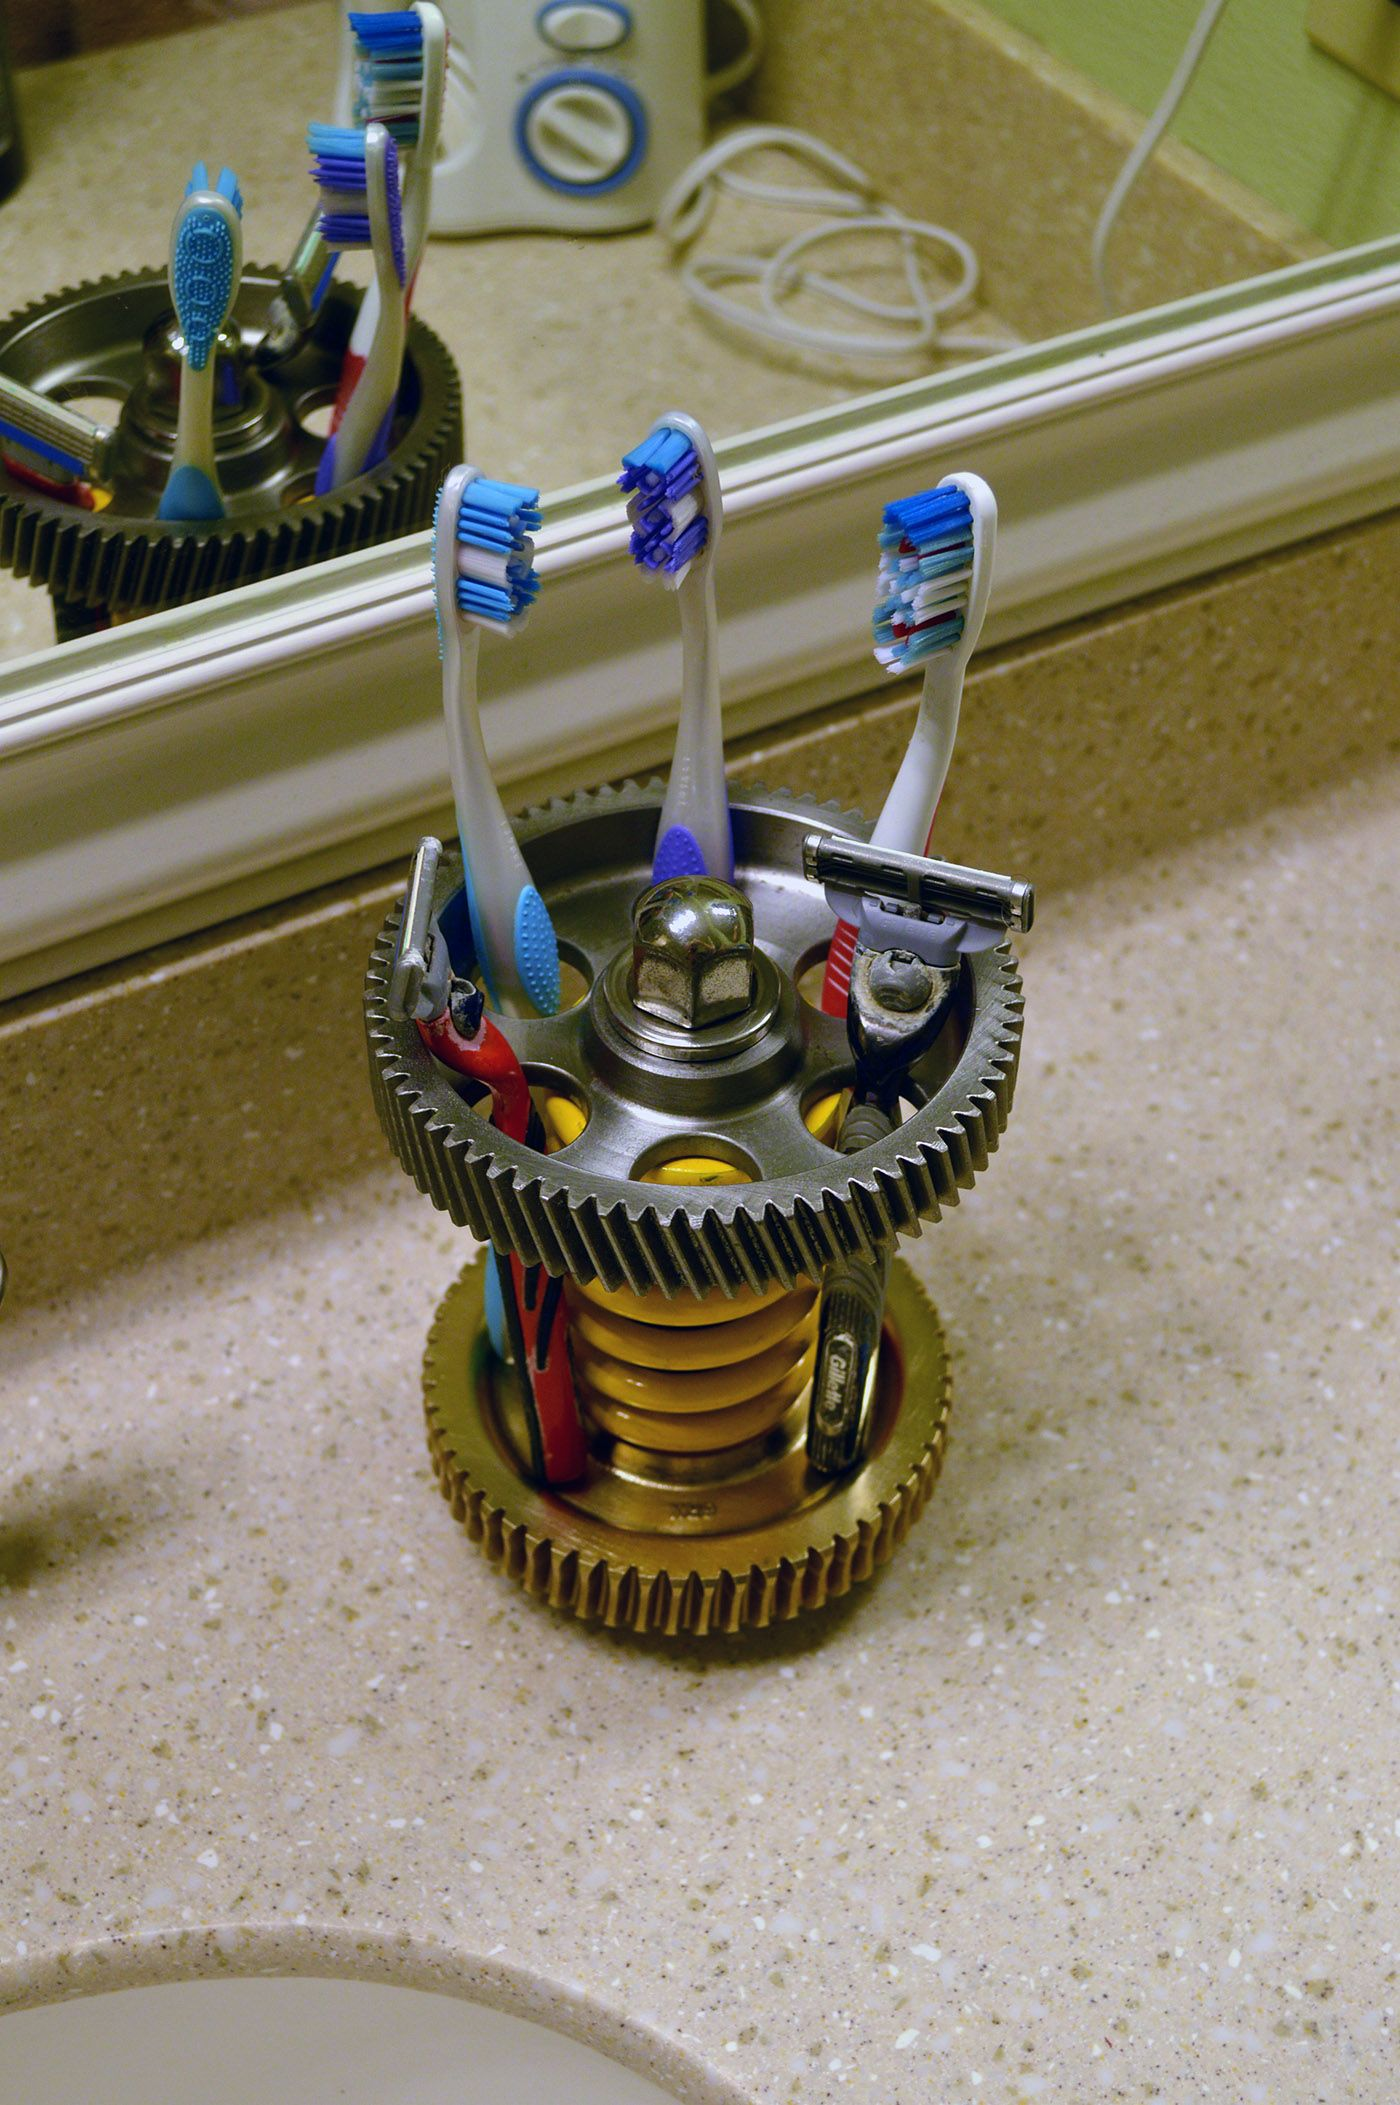 Toothbrush Holder Made From A Few Gears, A Spring And A